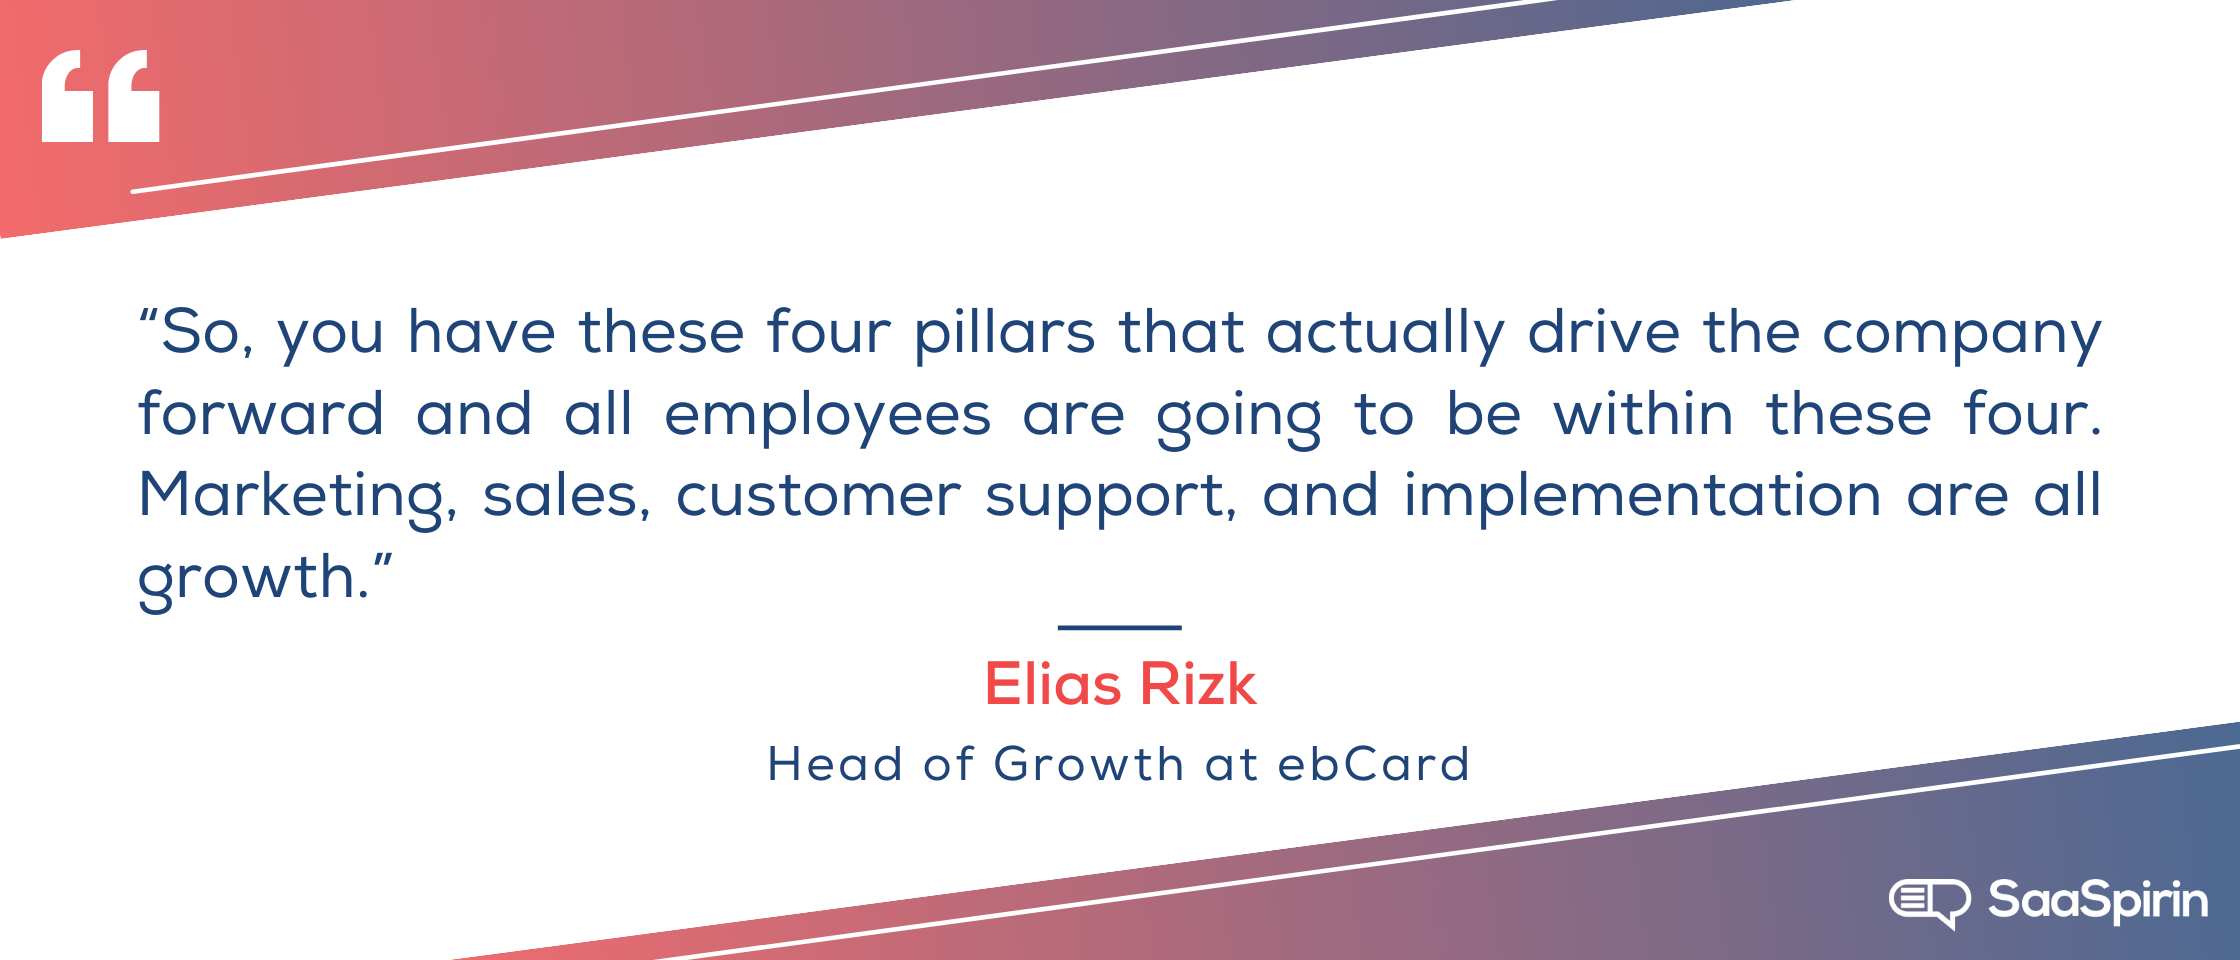 So-you-have-these-four-pillars-that-actually-drive-the-company-forward-and-all-employees-are-going-to-be-within-these-four-Marketing-sales-customer-support-and-implementation-are-all-growth.png